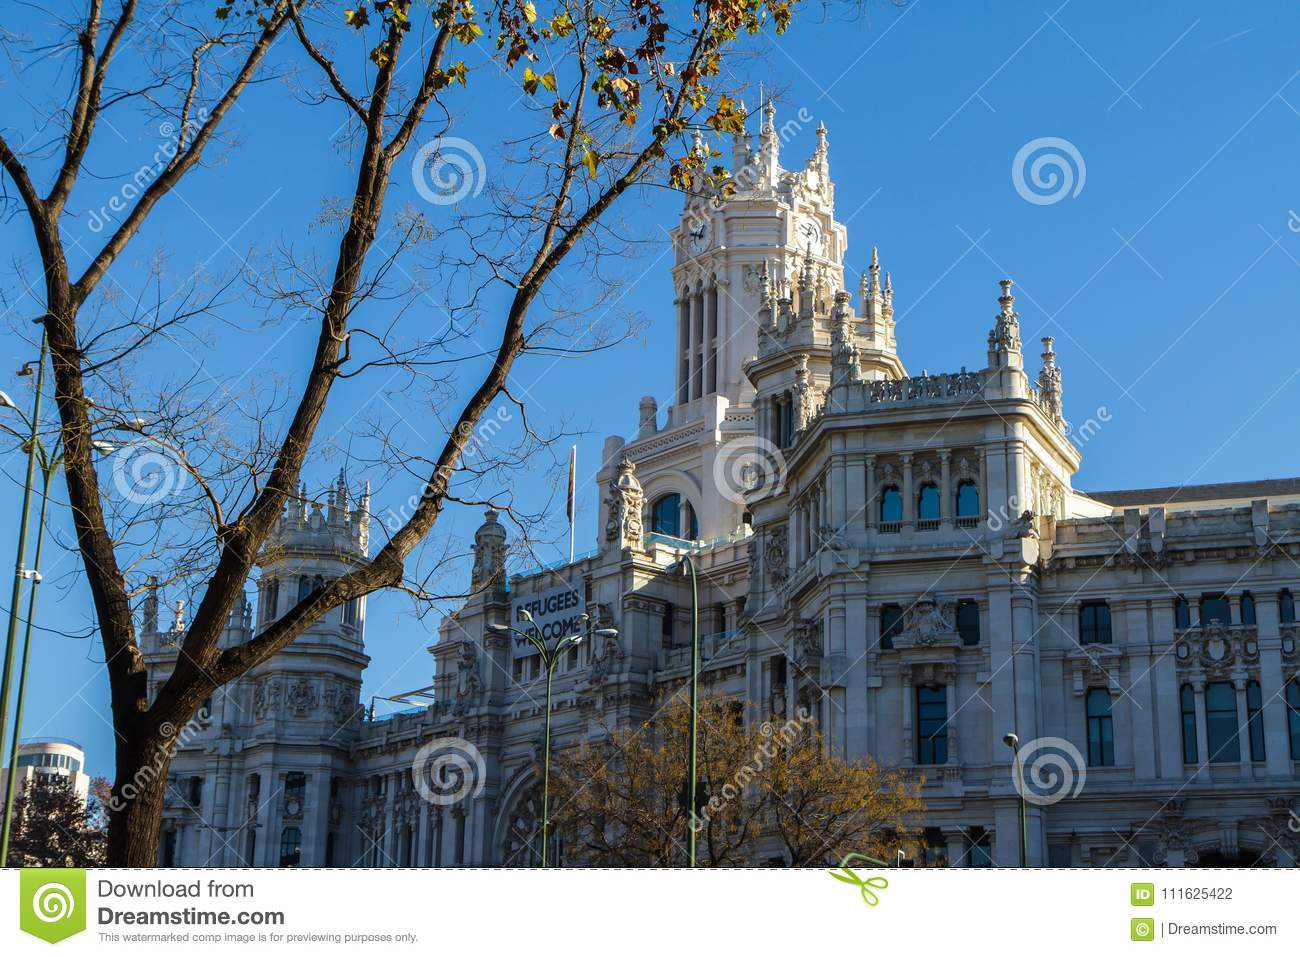 Cybele Palace, formerly the Palace of Communication in Madrid, Spain. Currently the seat of the City Council 29.12,2016